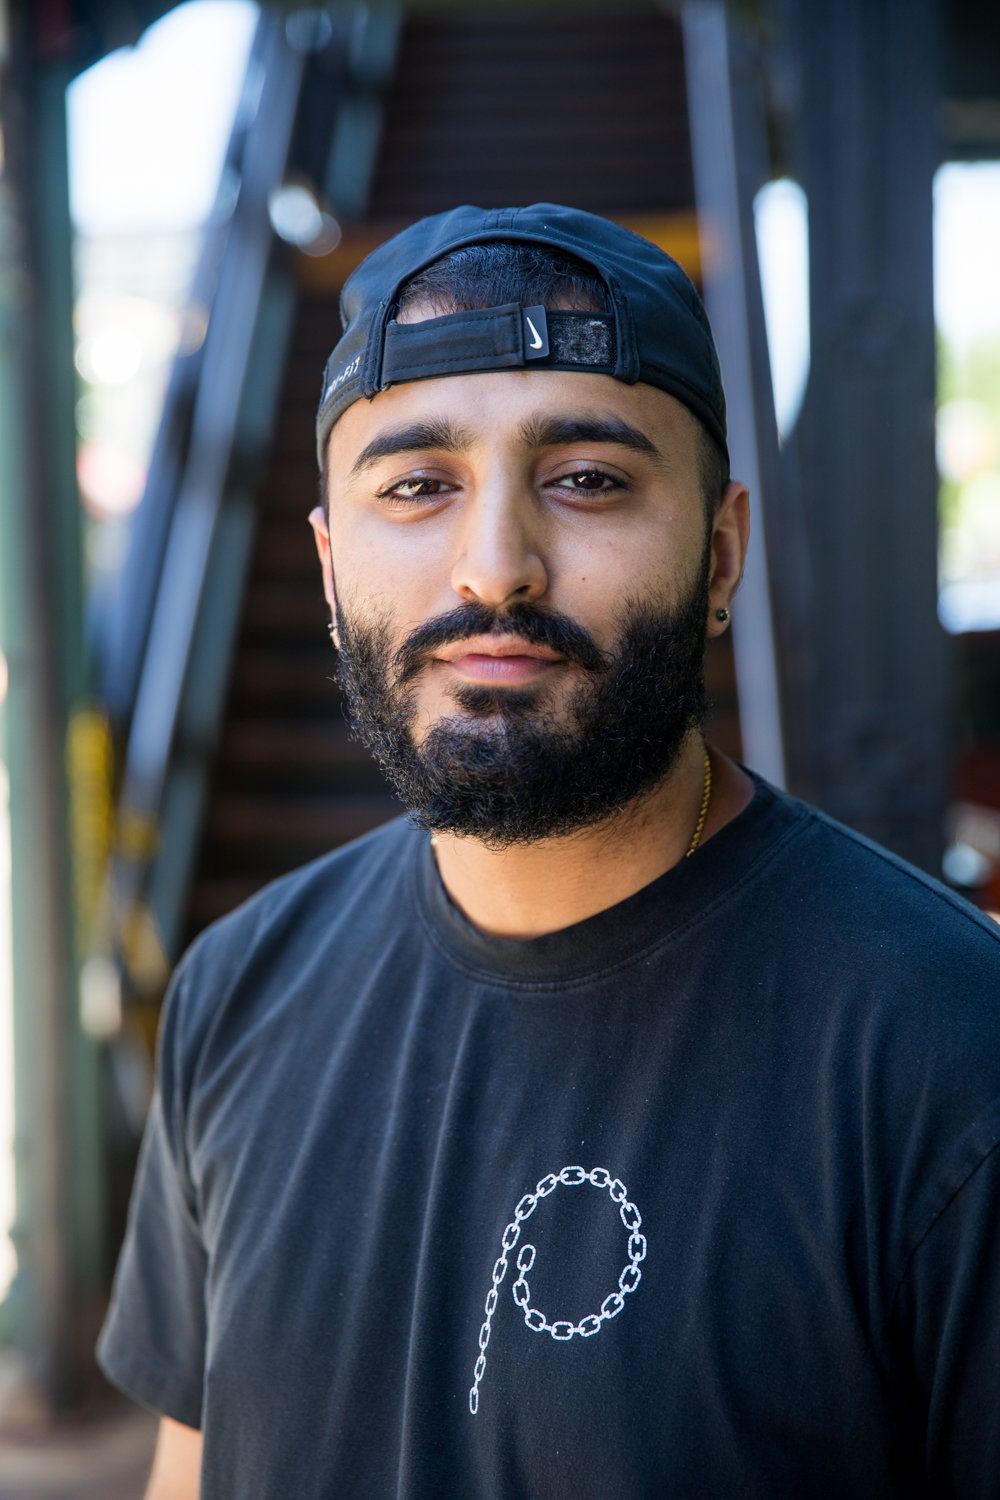 Pardeep Singh Deol , owner of The Last Stop, was on board with the 'friendly fridge' idea from the beginning. In the weeks since it's been stationed outside his 5977 Broadway eatery, the fridge has been full of food available to those who need it for free.